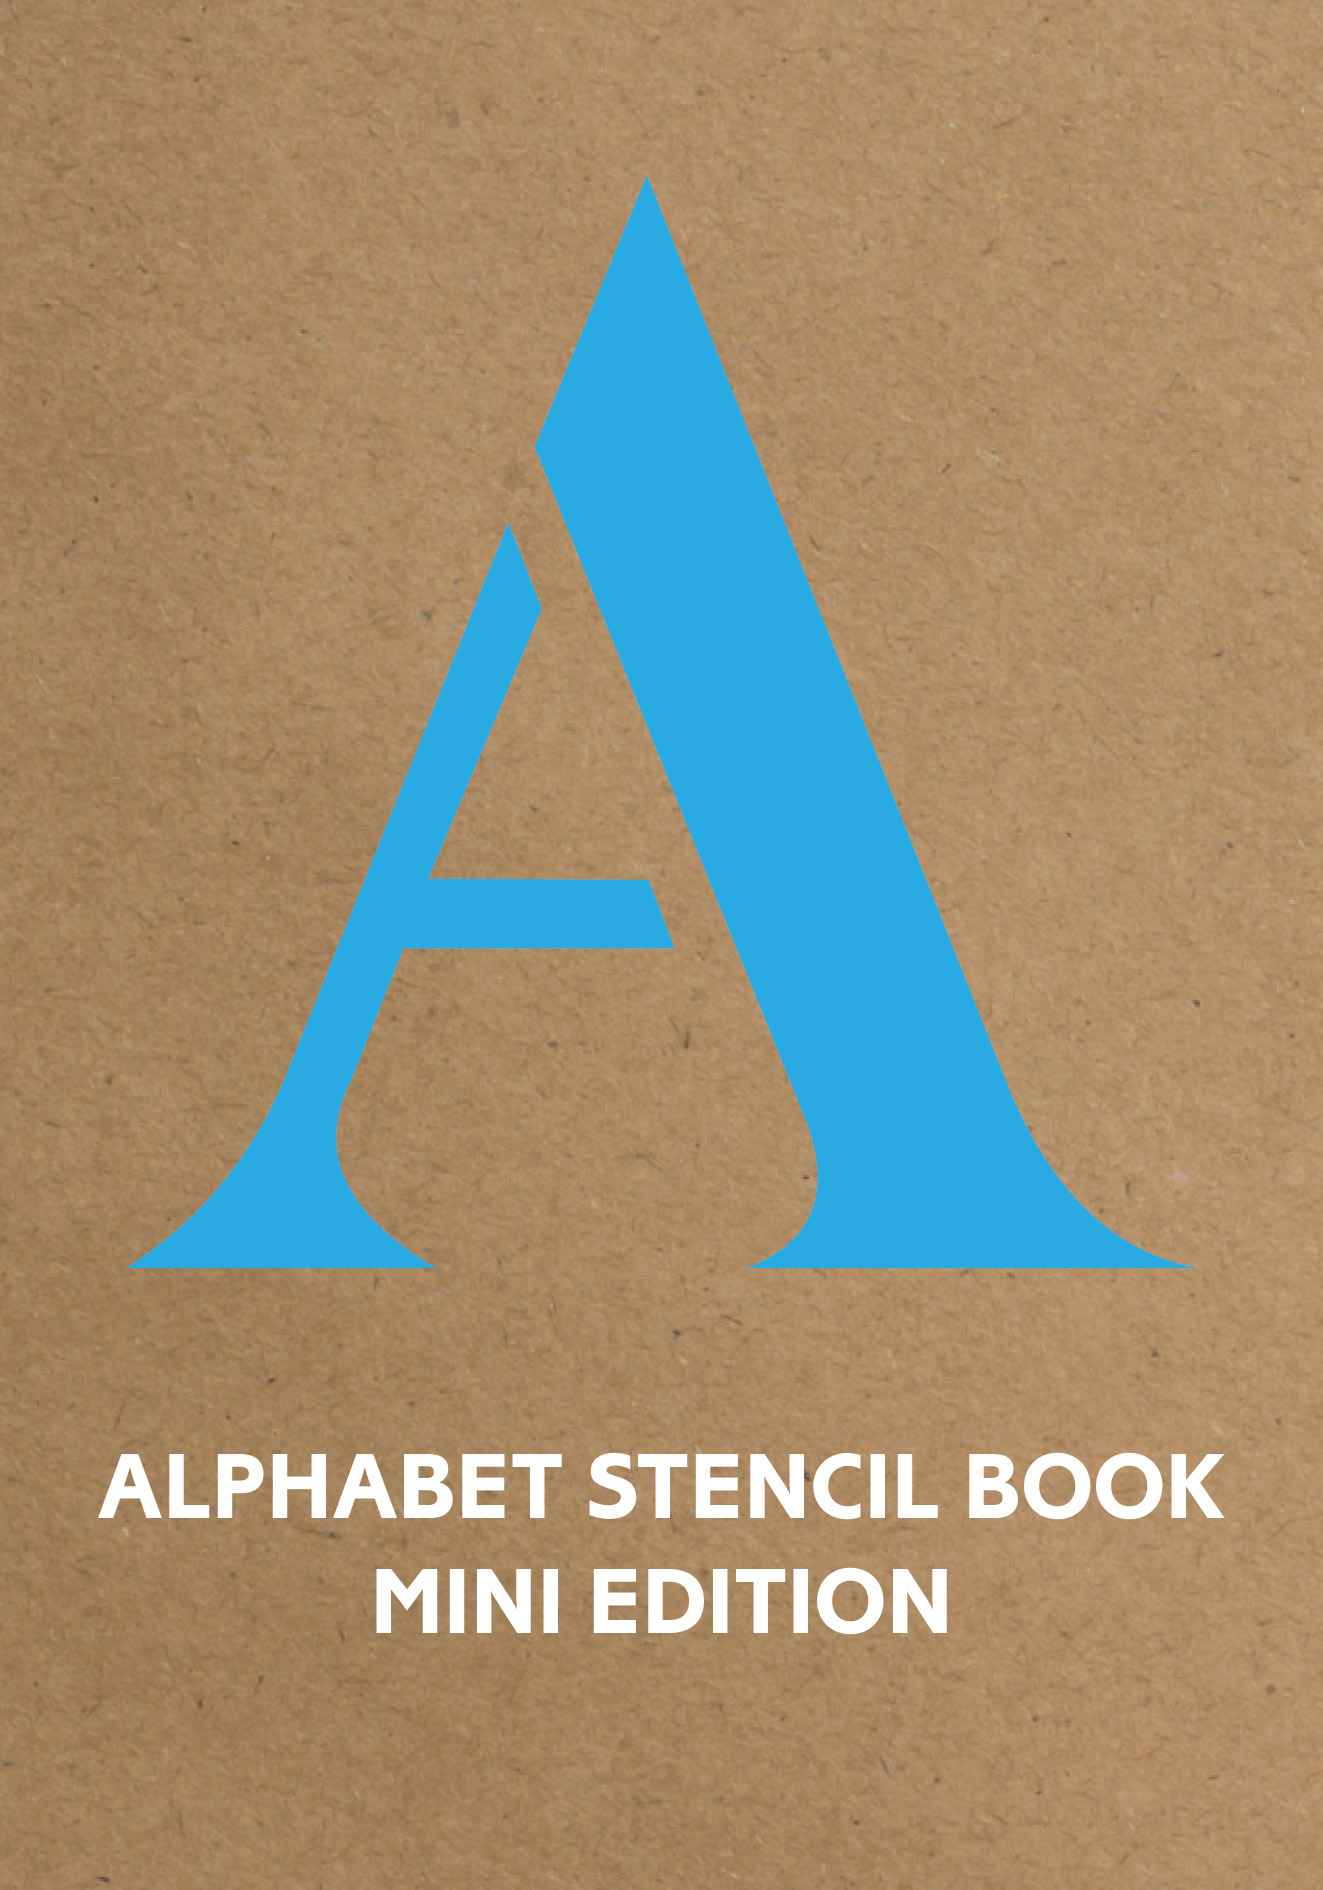 Alphabet Stencil Book mini edition (blue)